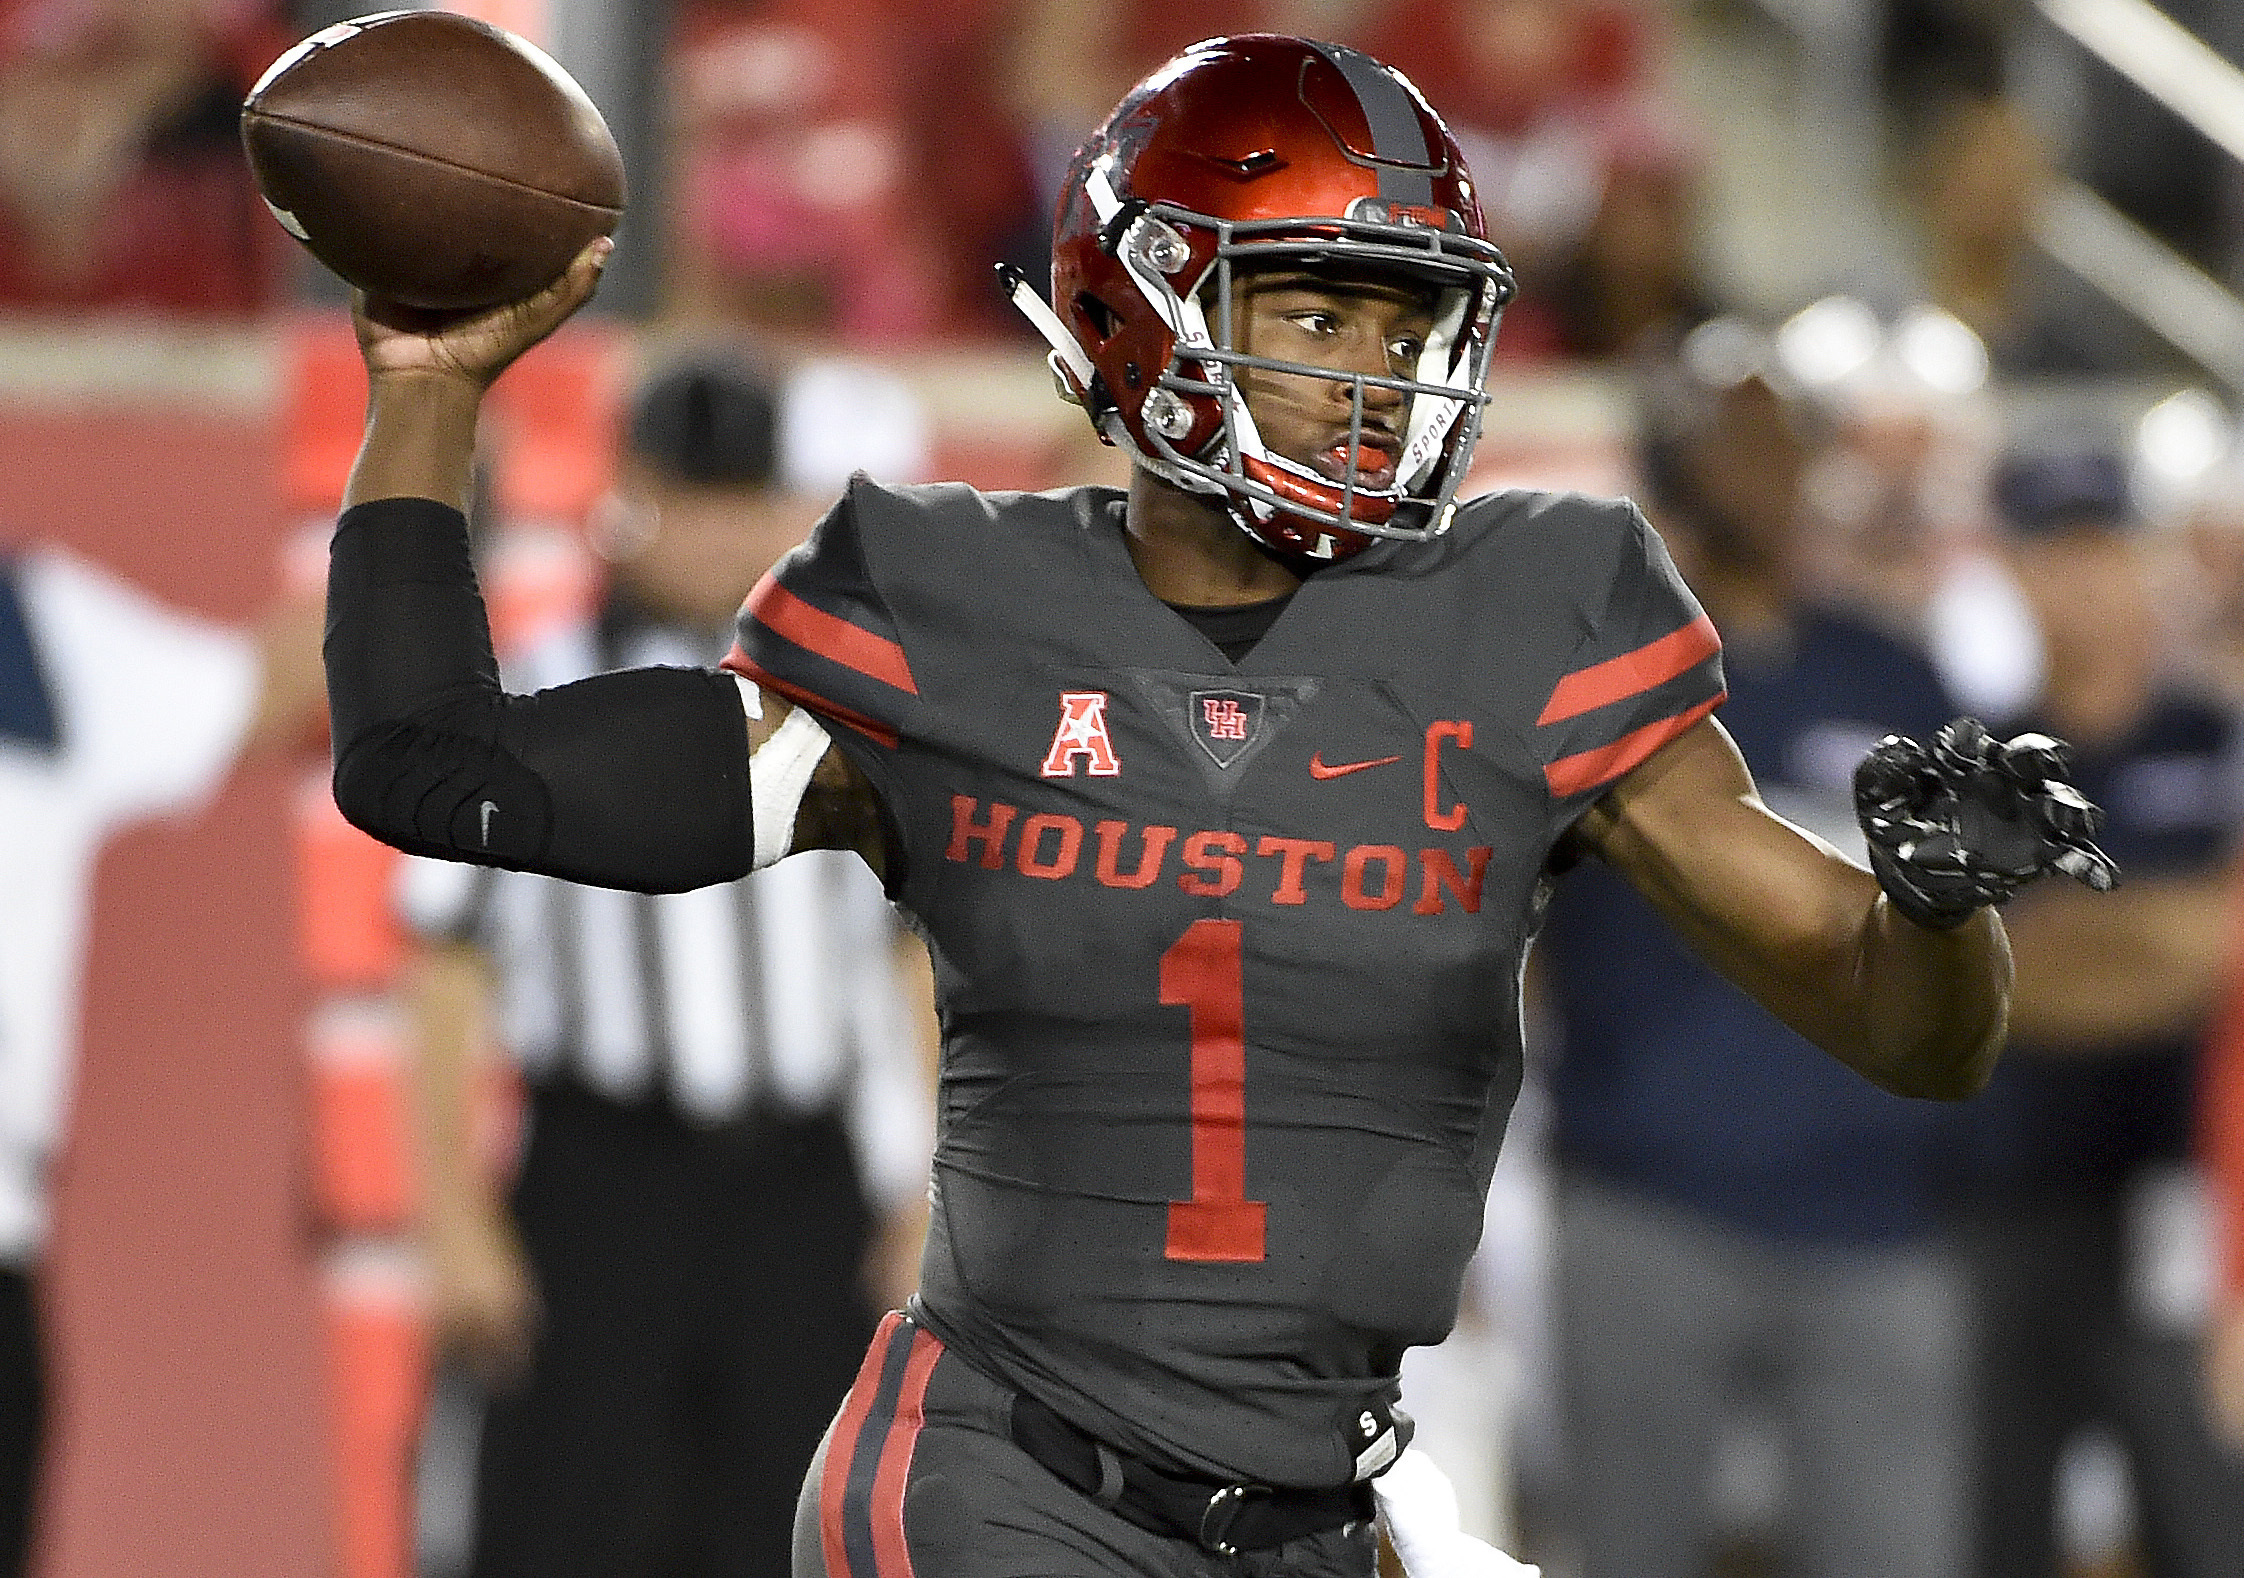 FILE - In this Sept. 29, 2016, file photo, Houston quarterback Greg Ward Jr. throws a pass in the second half of an NCAA college football game against Connecticut, in Houston. Navy head coach Ken Niumatalolo offered a unique strategy when asked his though